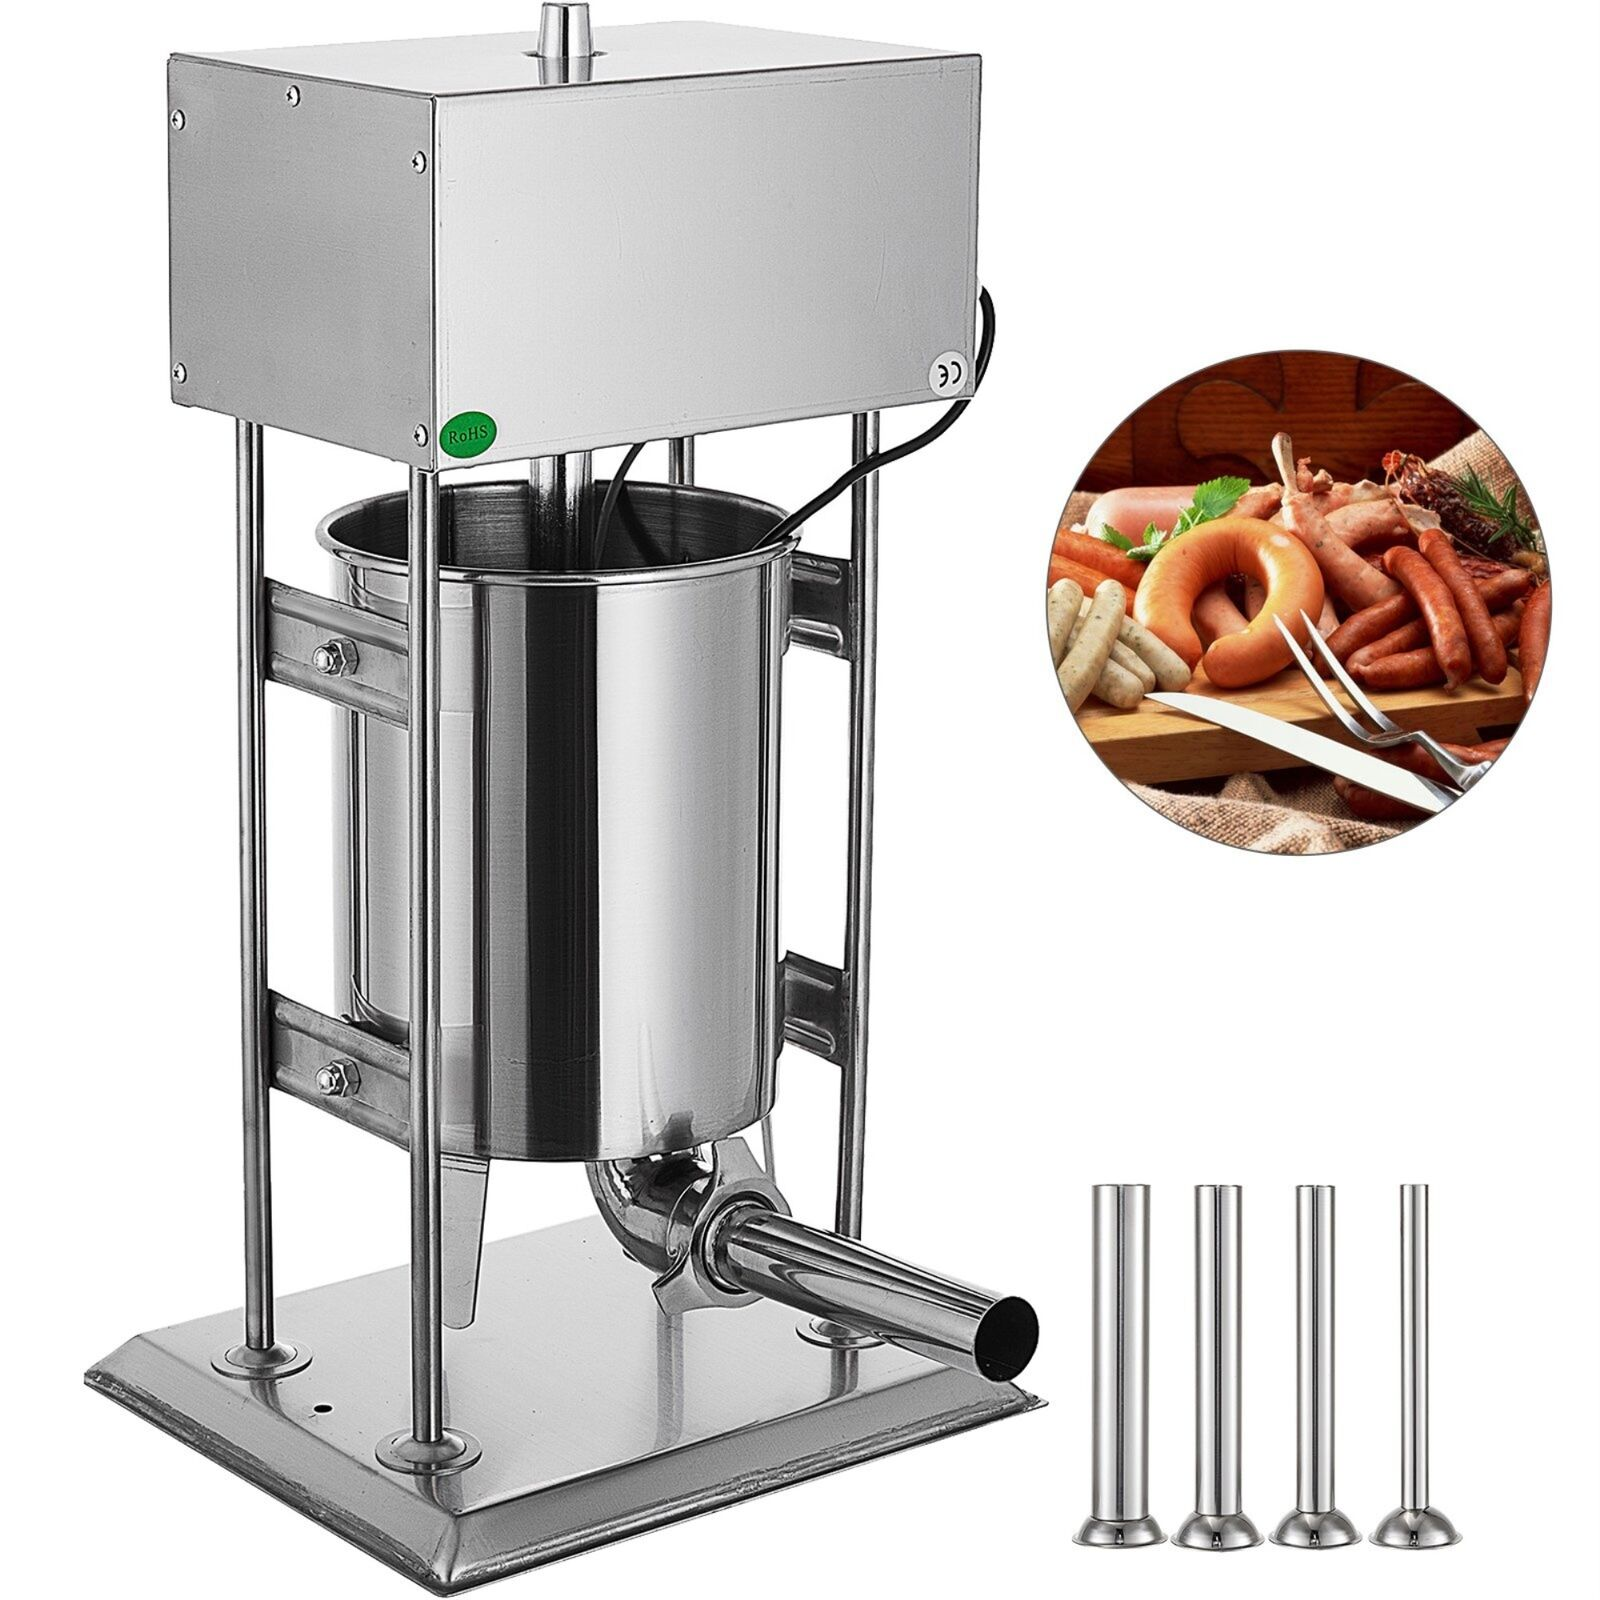 10l 25lb Electric Commerical Sausage Stuffer Stainless Dual Speed Price. Buy it now for 395.06